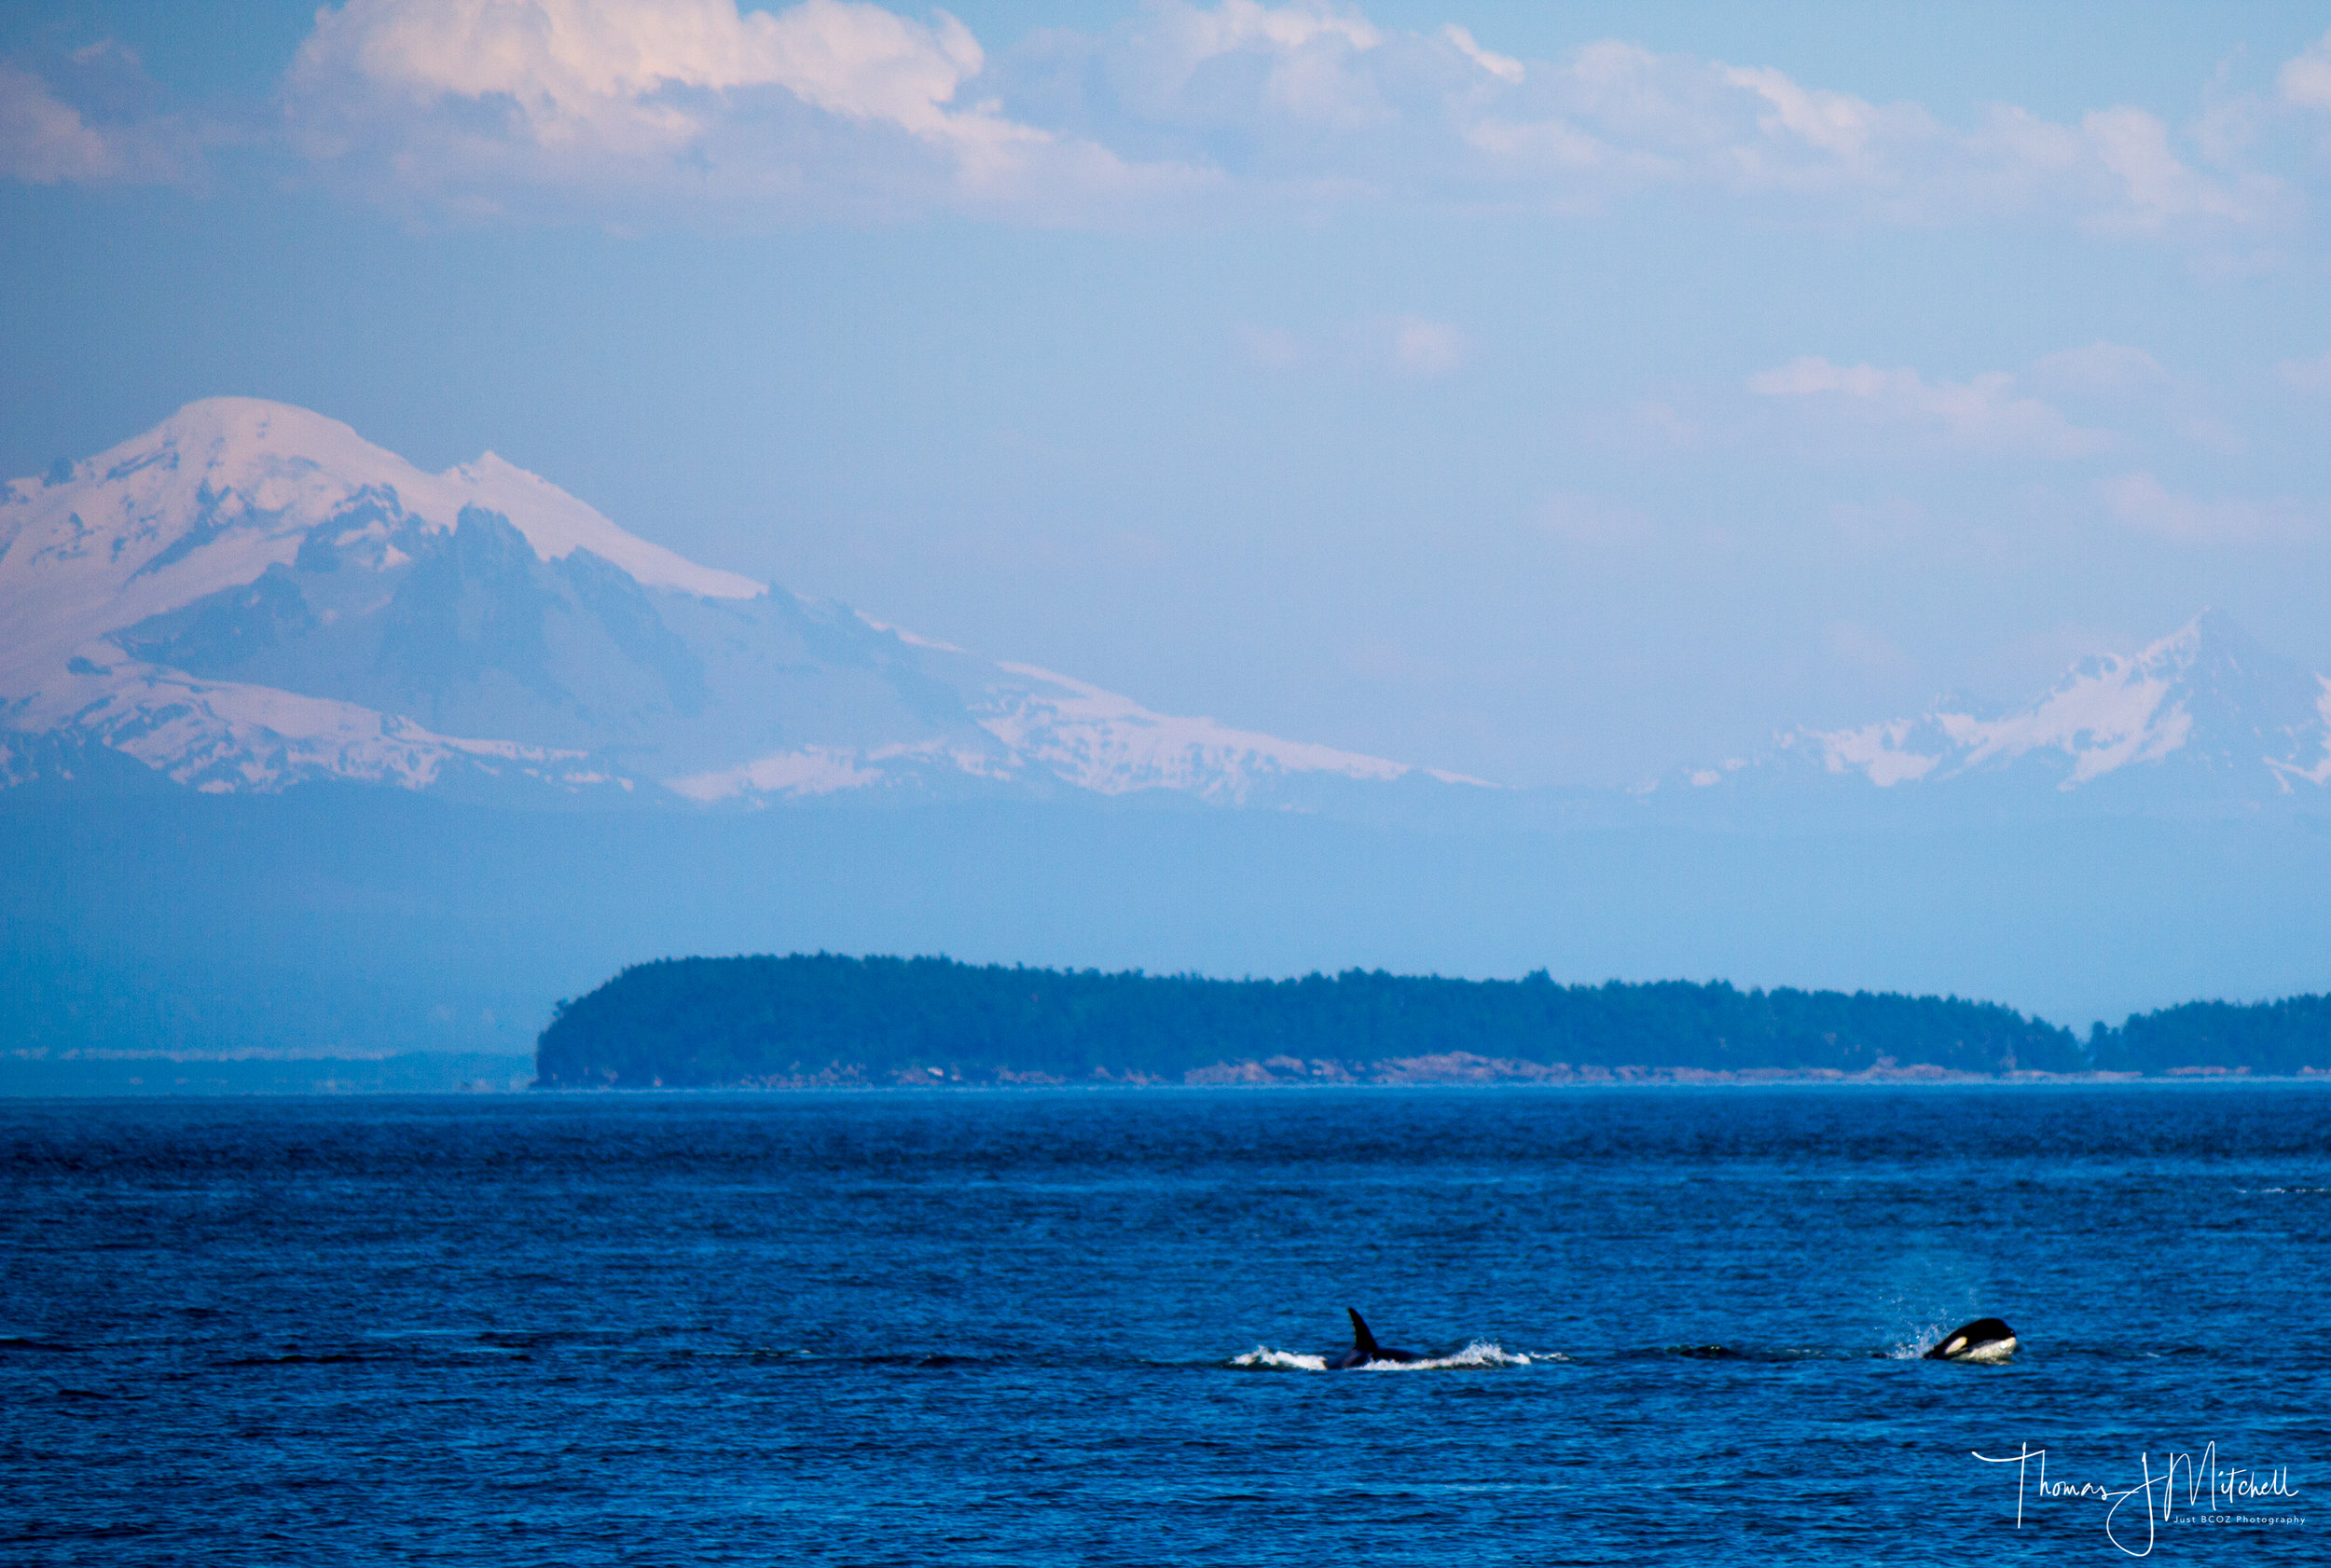 The afternoon expedition encountered a large group of Bigg's orca with Mt. Baker in the background.